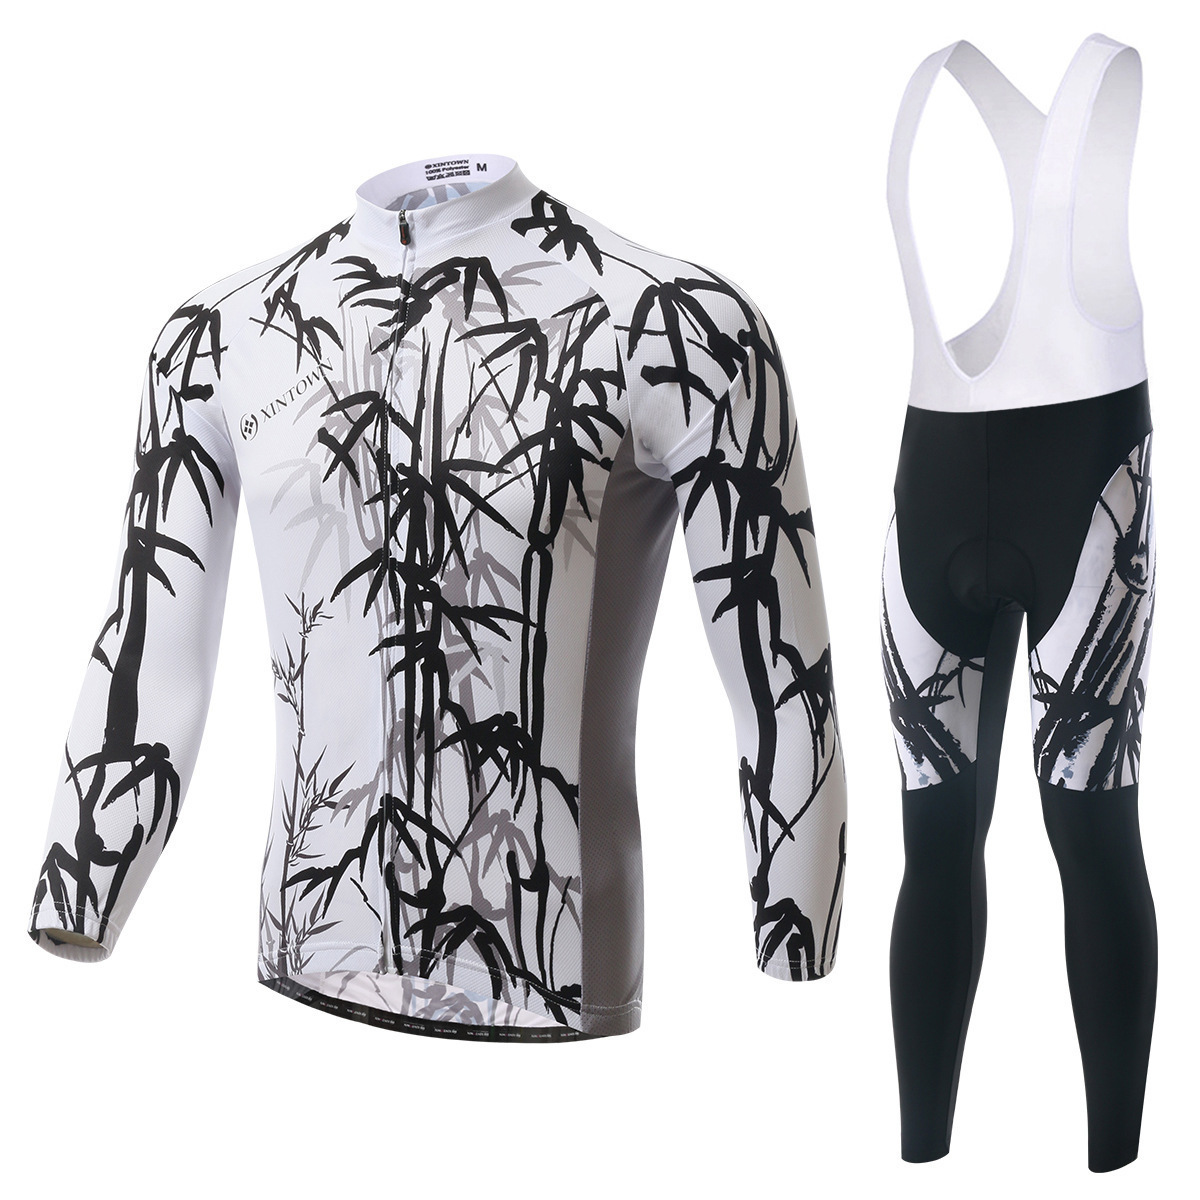 BOODUN Ink Painting Of Bamboo White Riding Clothes Straps Long Sleeve Serve Catch Down Windbreak Keep Warm Function Underwear